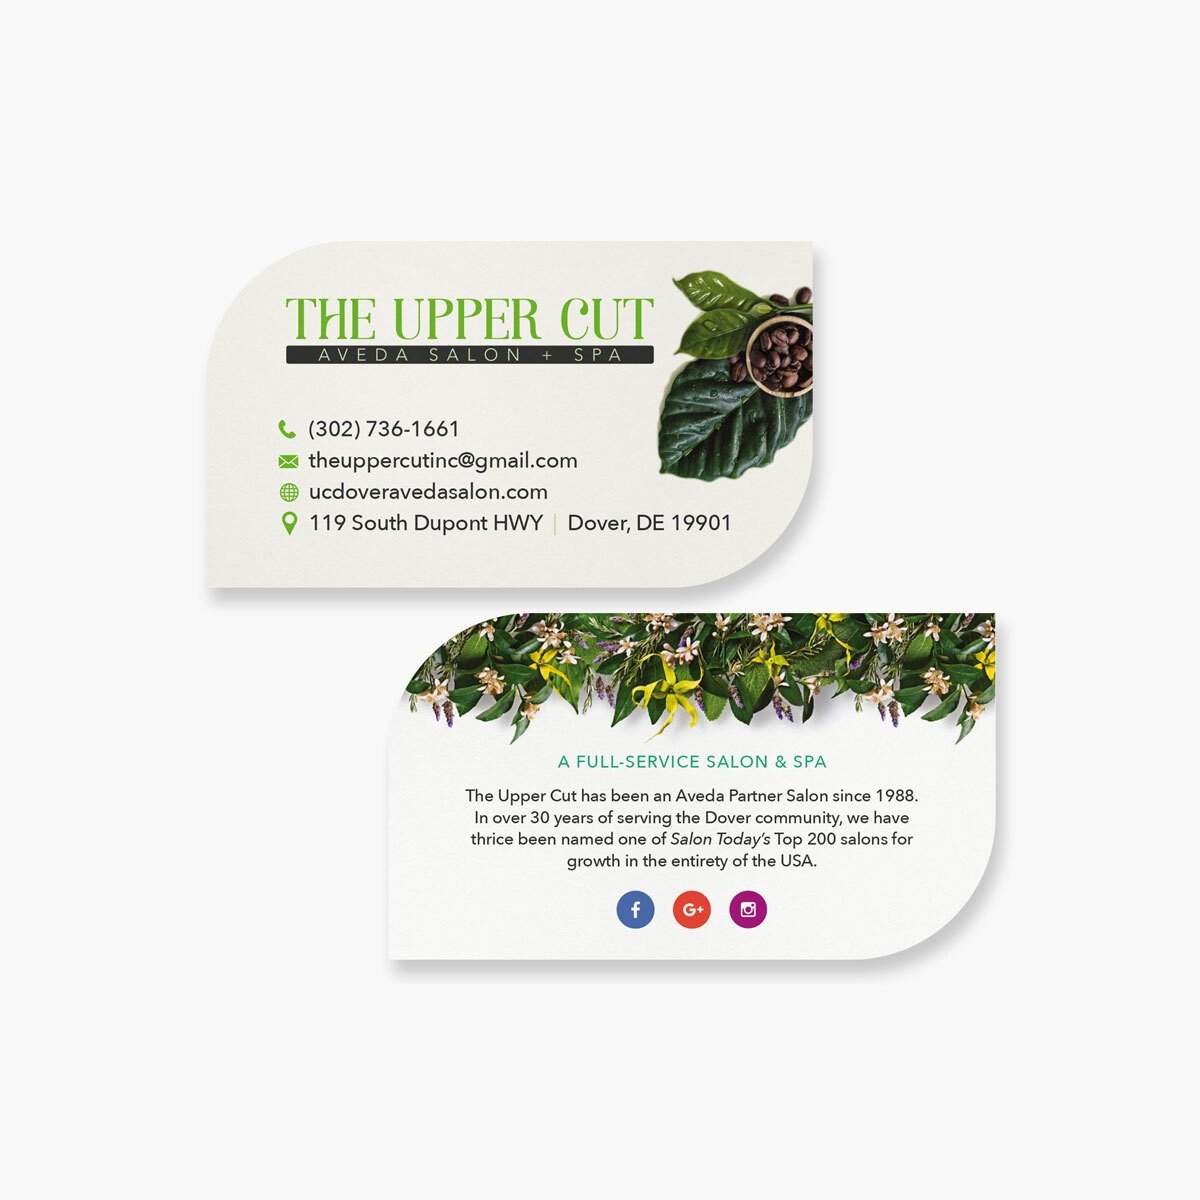 The Upper Cut Salon Business Cards Design by BrandSwan, a graphic design company